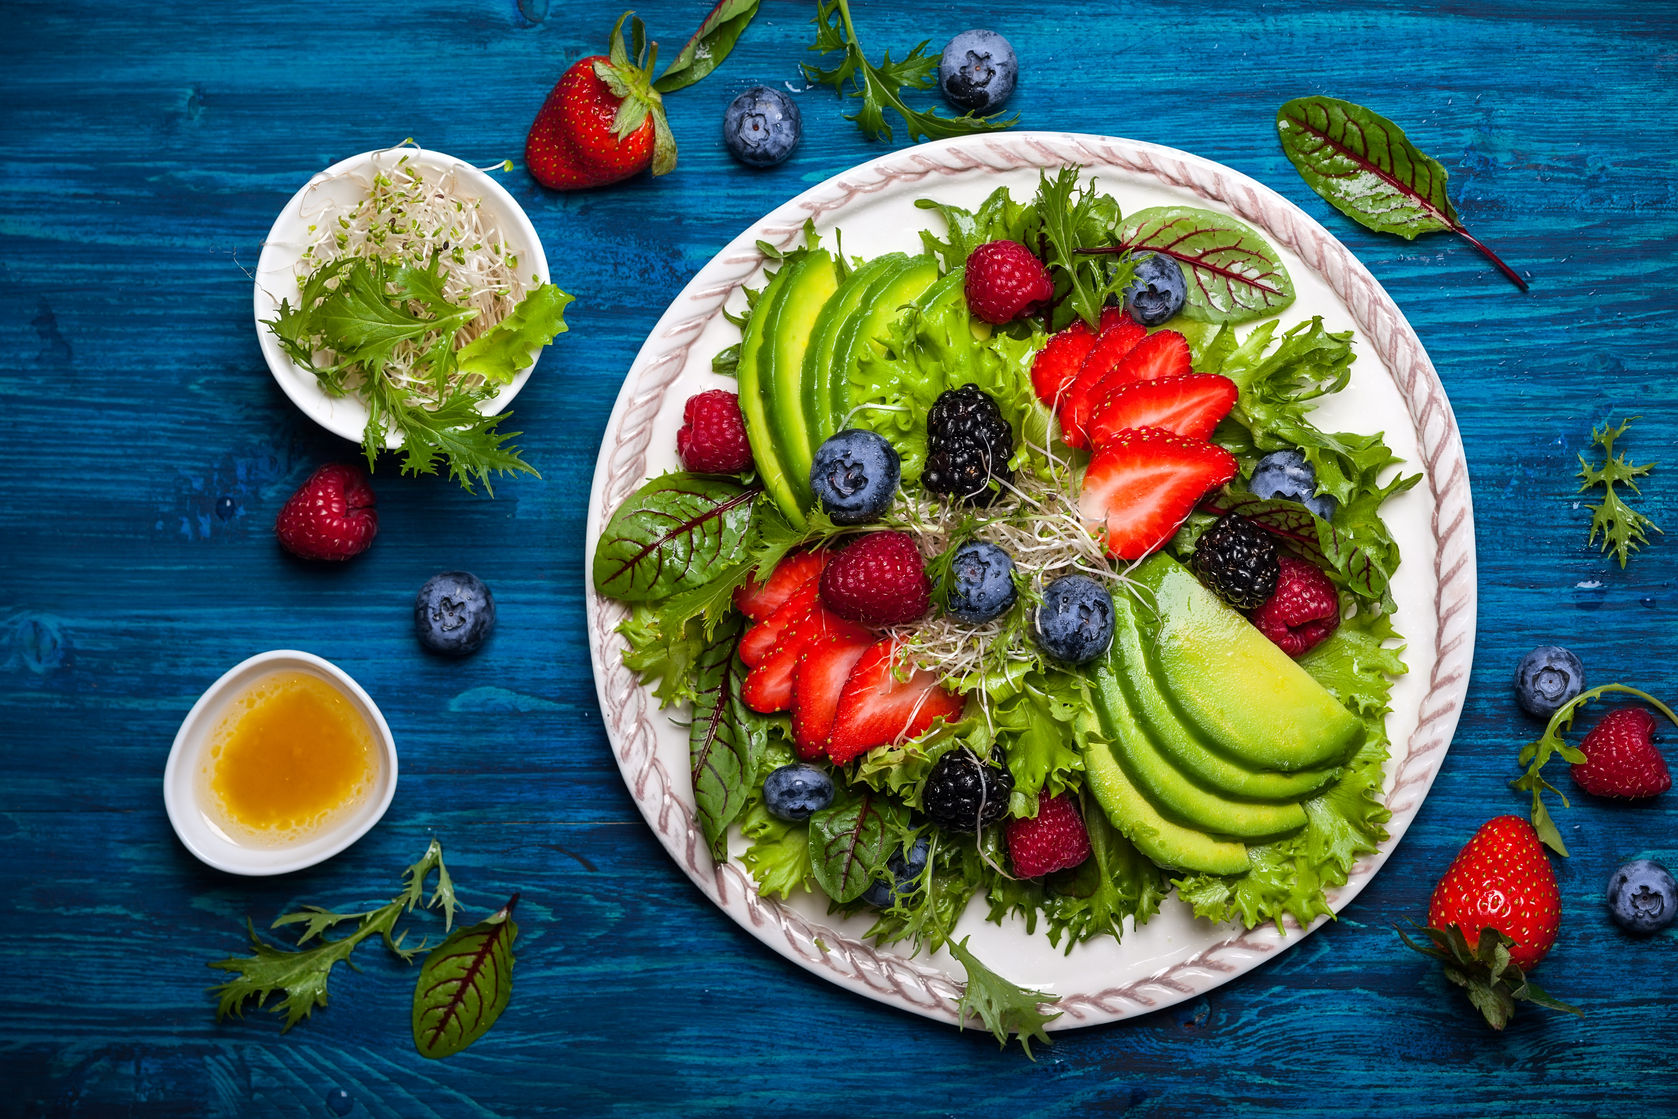 Avocado, mixed salad leaves, with berries and honey mustard dressing http://www.info-on-high-blood-pressure.com/Eat-Well.html